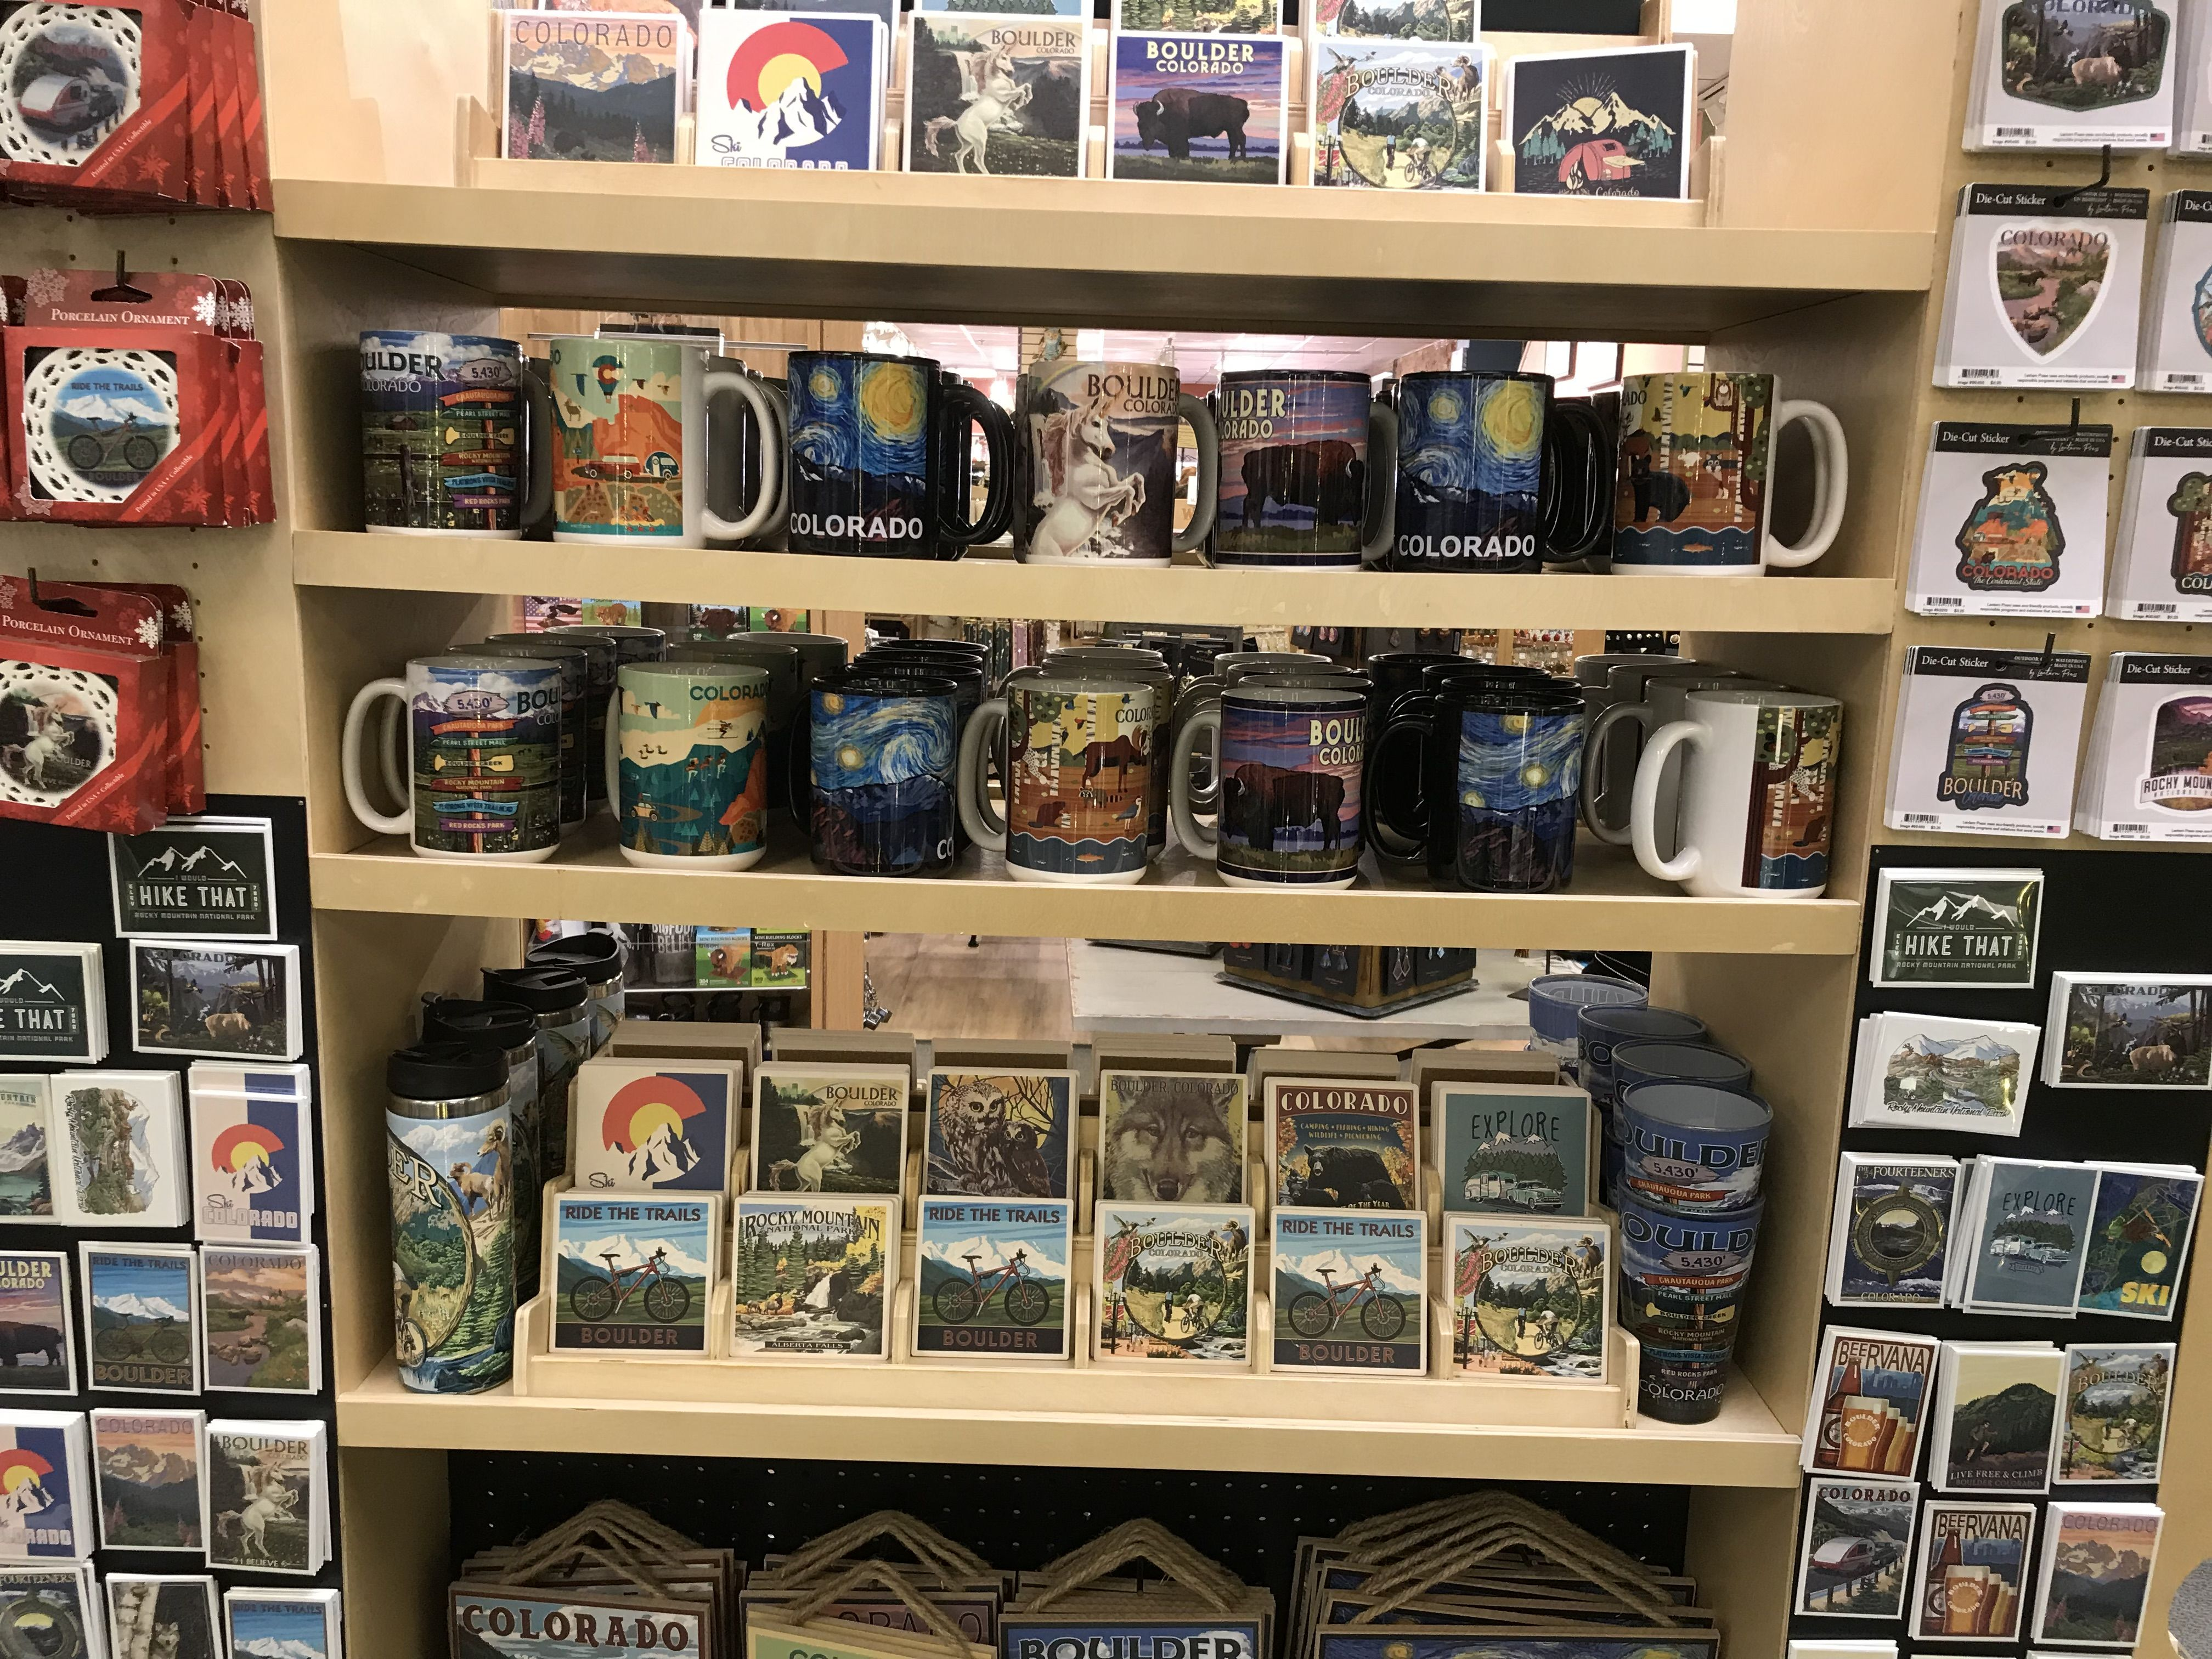 Find every type of souvenir at art mart gifts in boulder